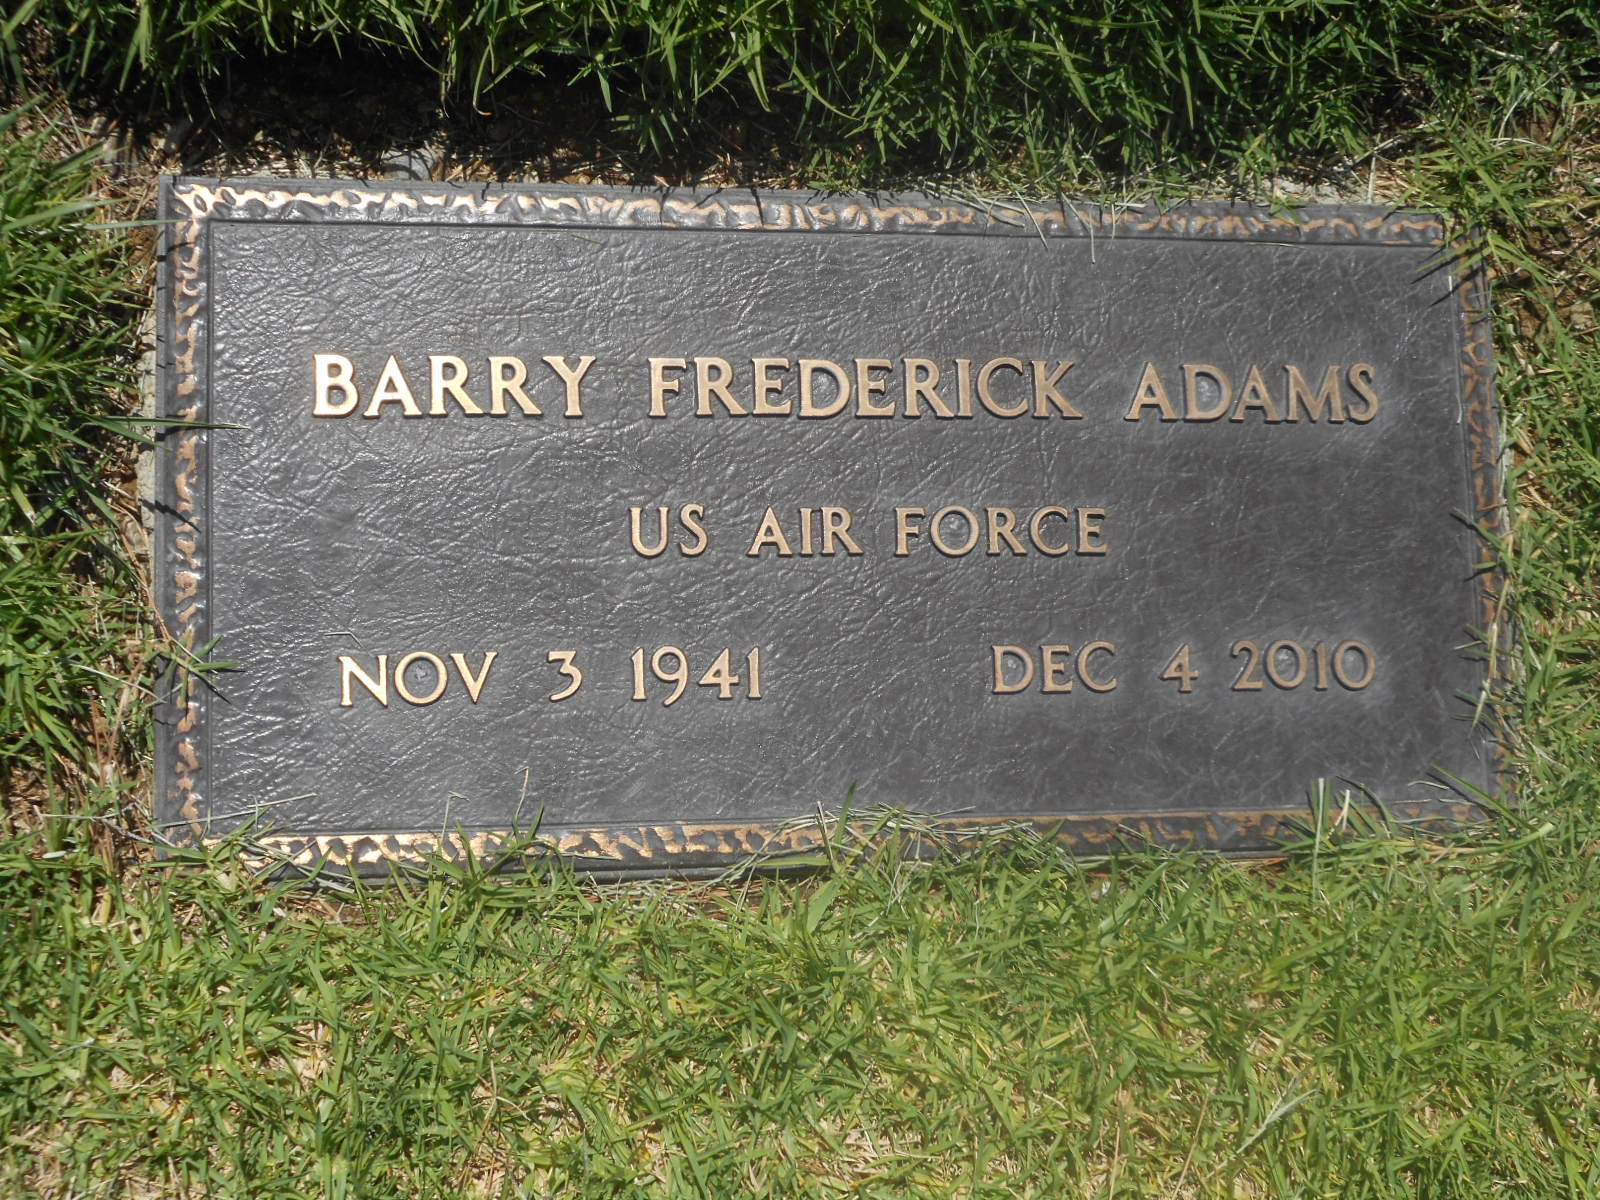 Barry Frederick Adams